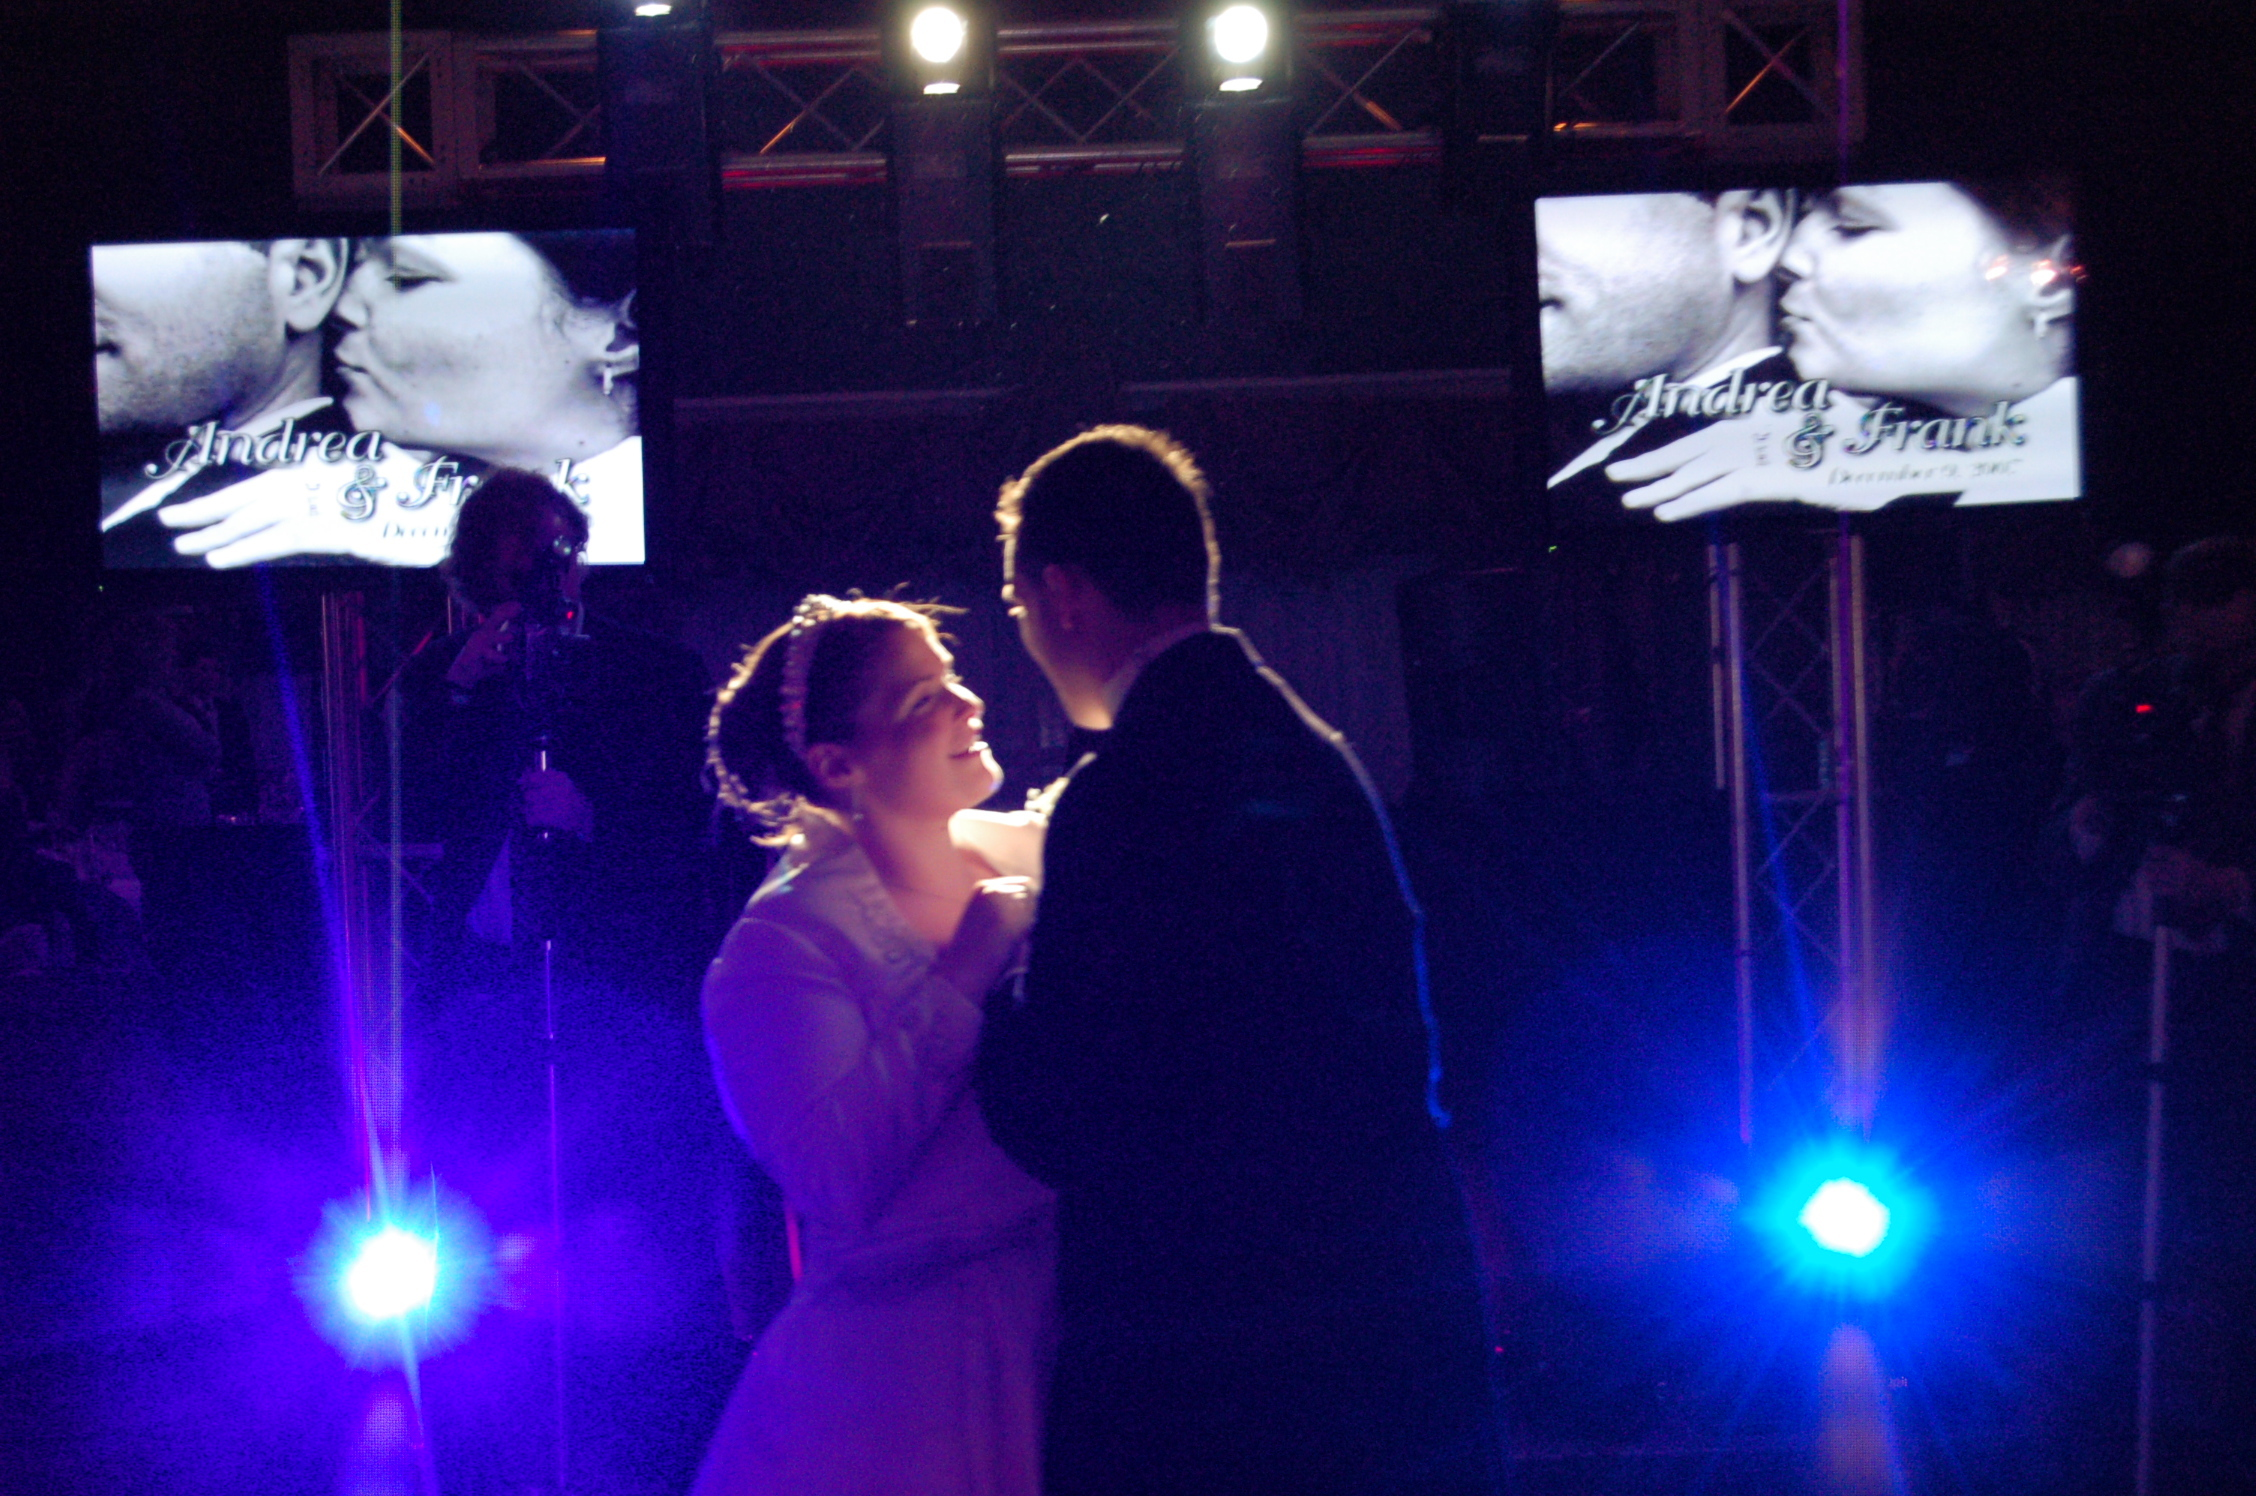 Lighting, Bride, Groom, Dance, Spotlight, Five star dj entertainment, Plasmas